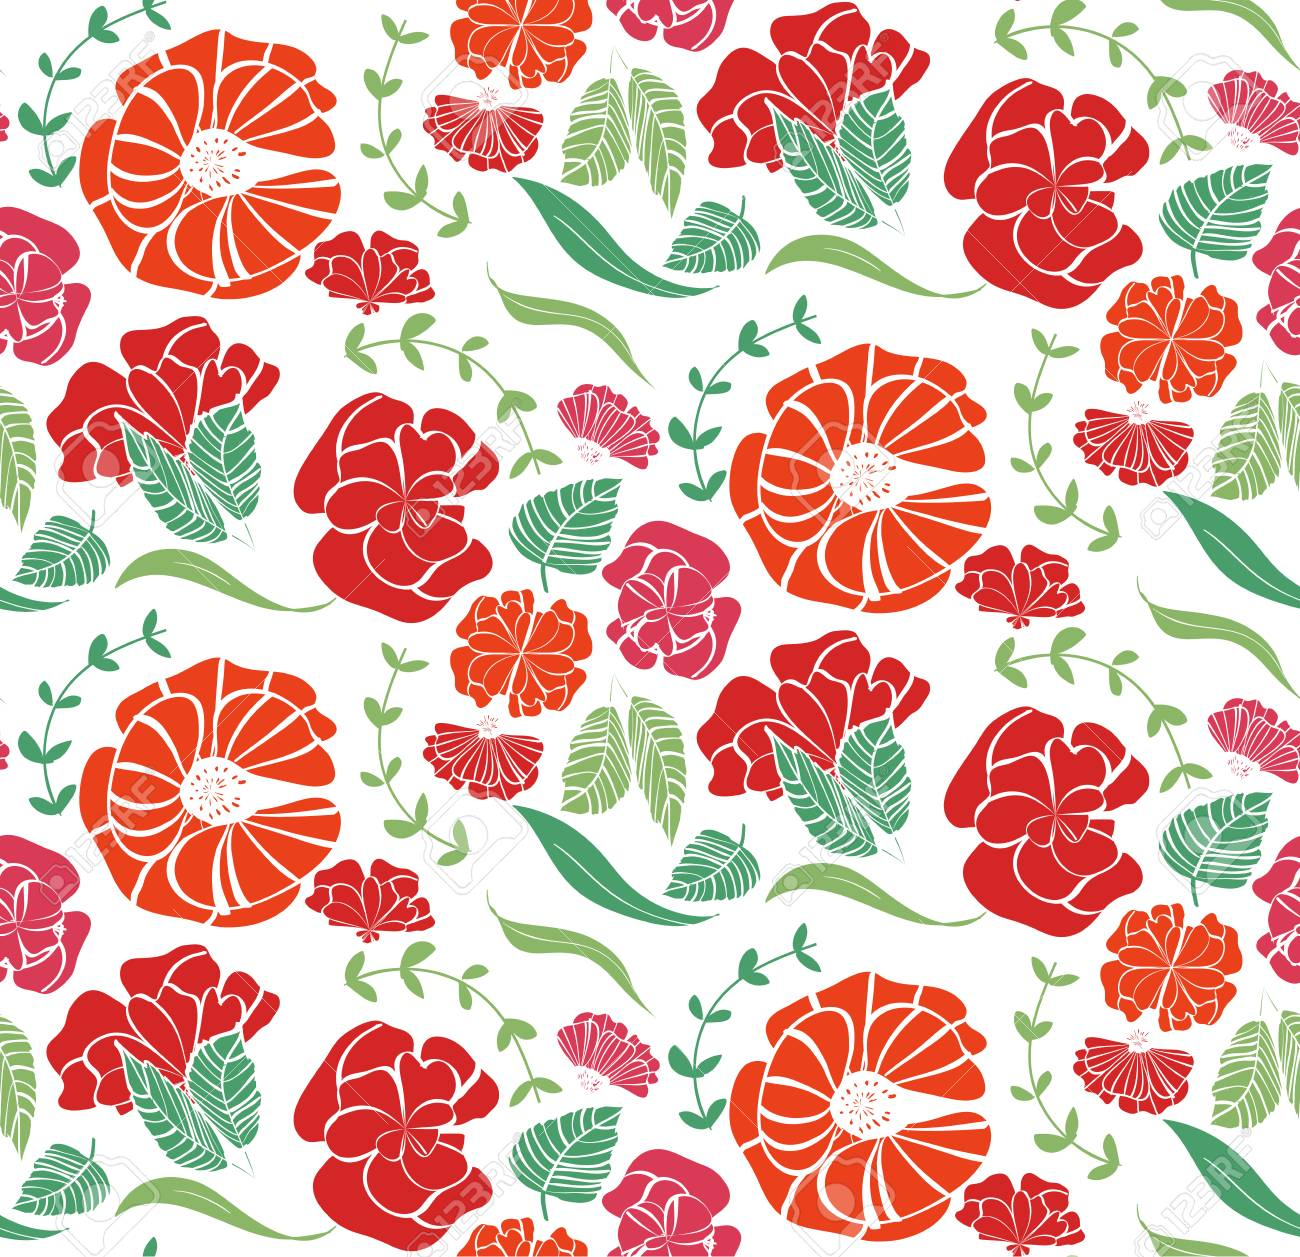 Vector seamless pattern with red roses, orange flowers and green leaves isolated on white background Stock Vector - 94744961